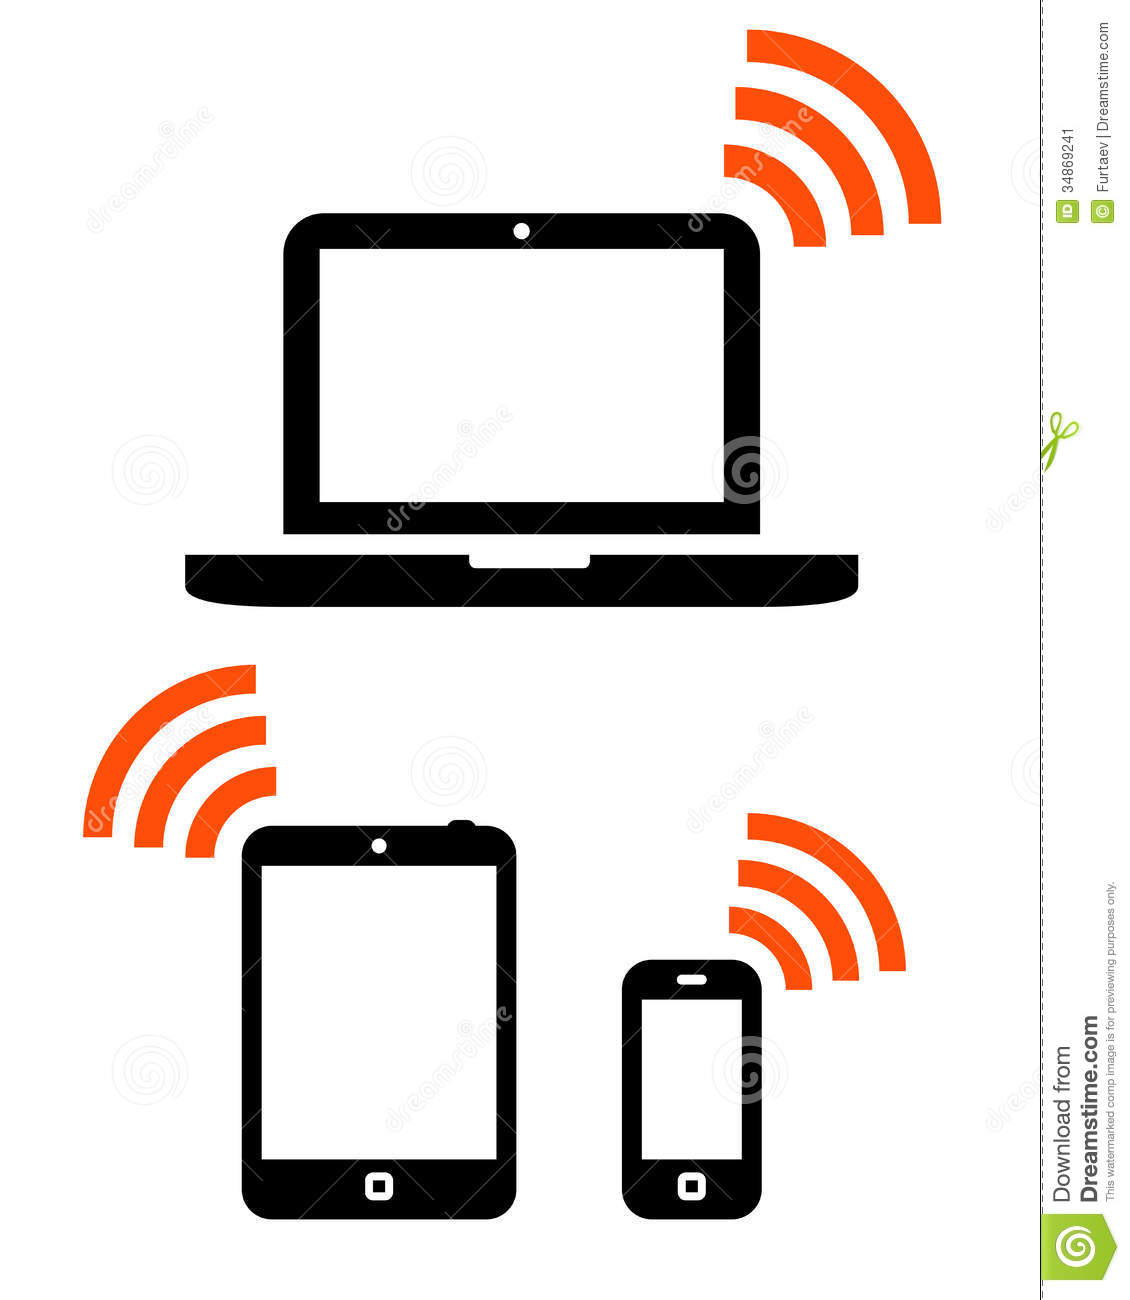 mobile and wireless Enjoy this article as well as all of our content, including e-guides, news, tips and more 3g refers to the third generation of developments in wireless technology, especially mobile.